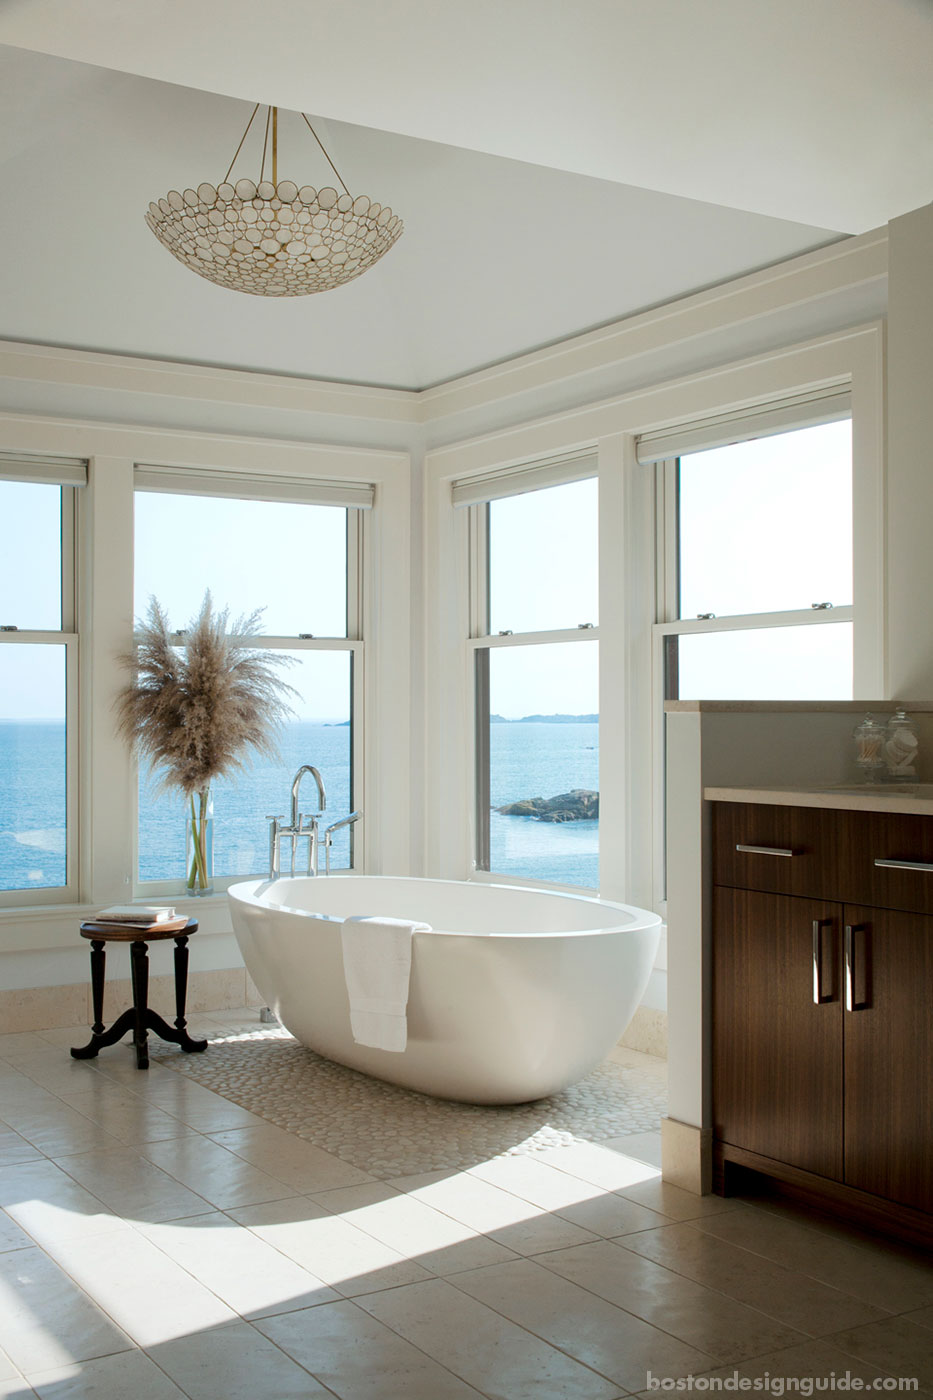 Soaking tub with oceanside views in a master bath designed by LDa Architecture & Interiors